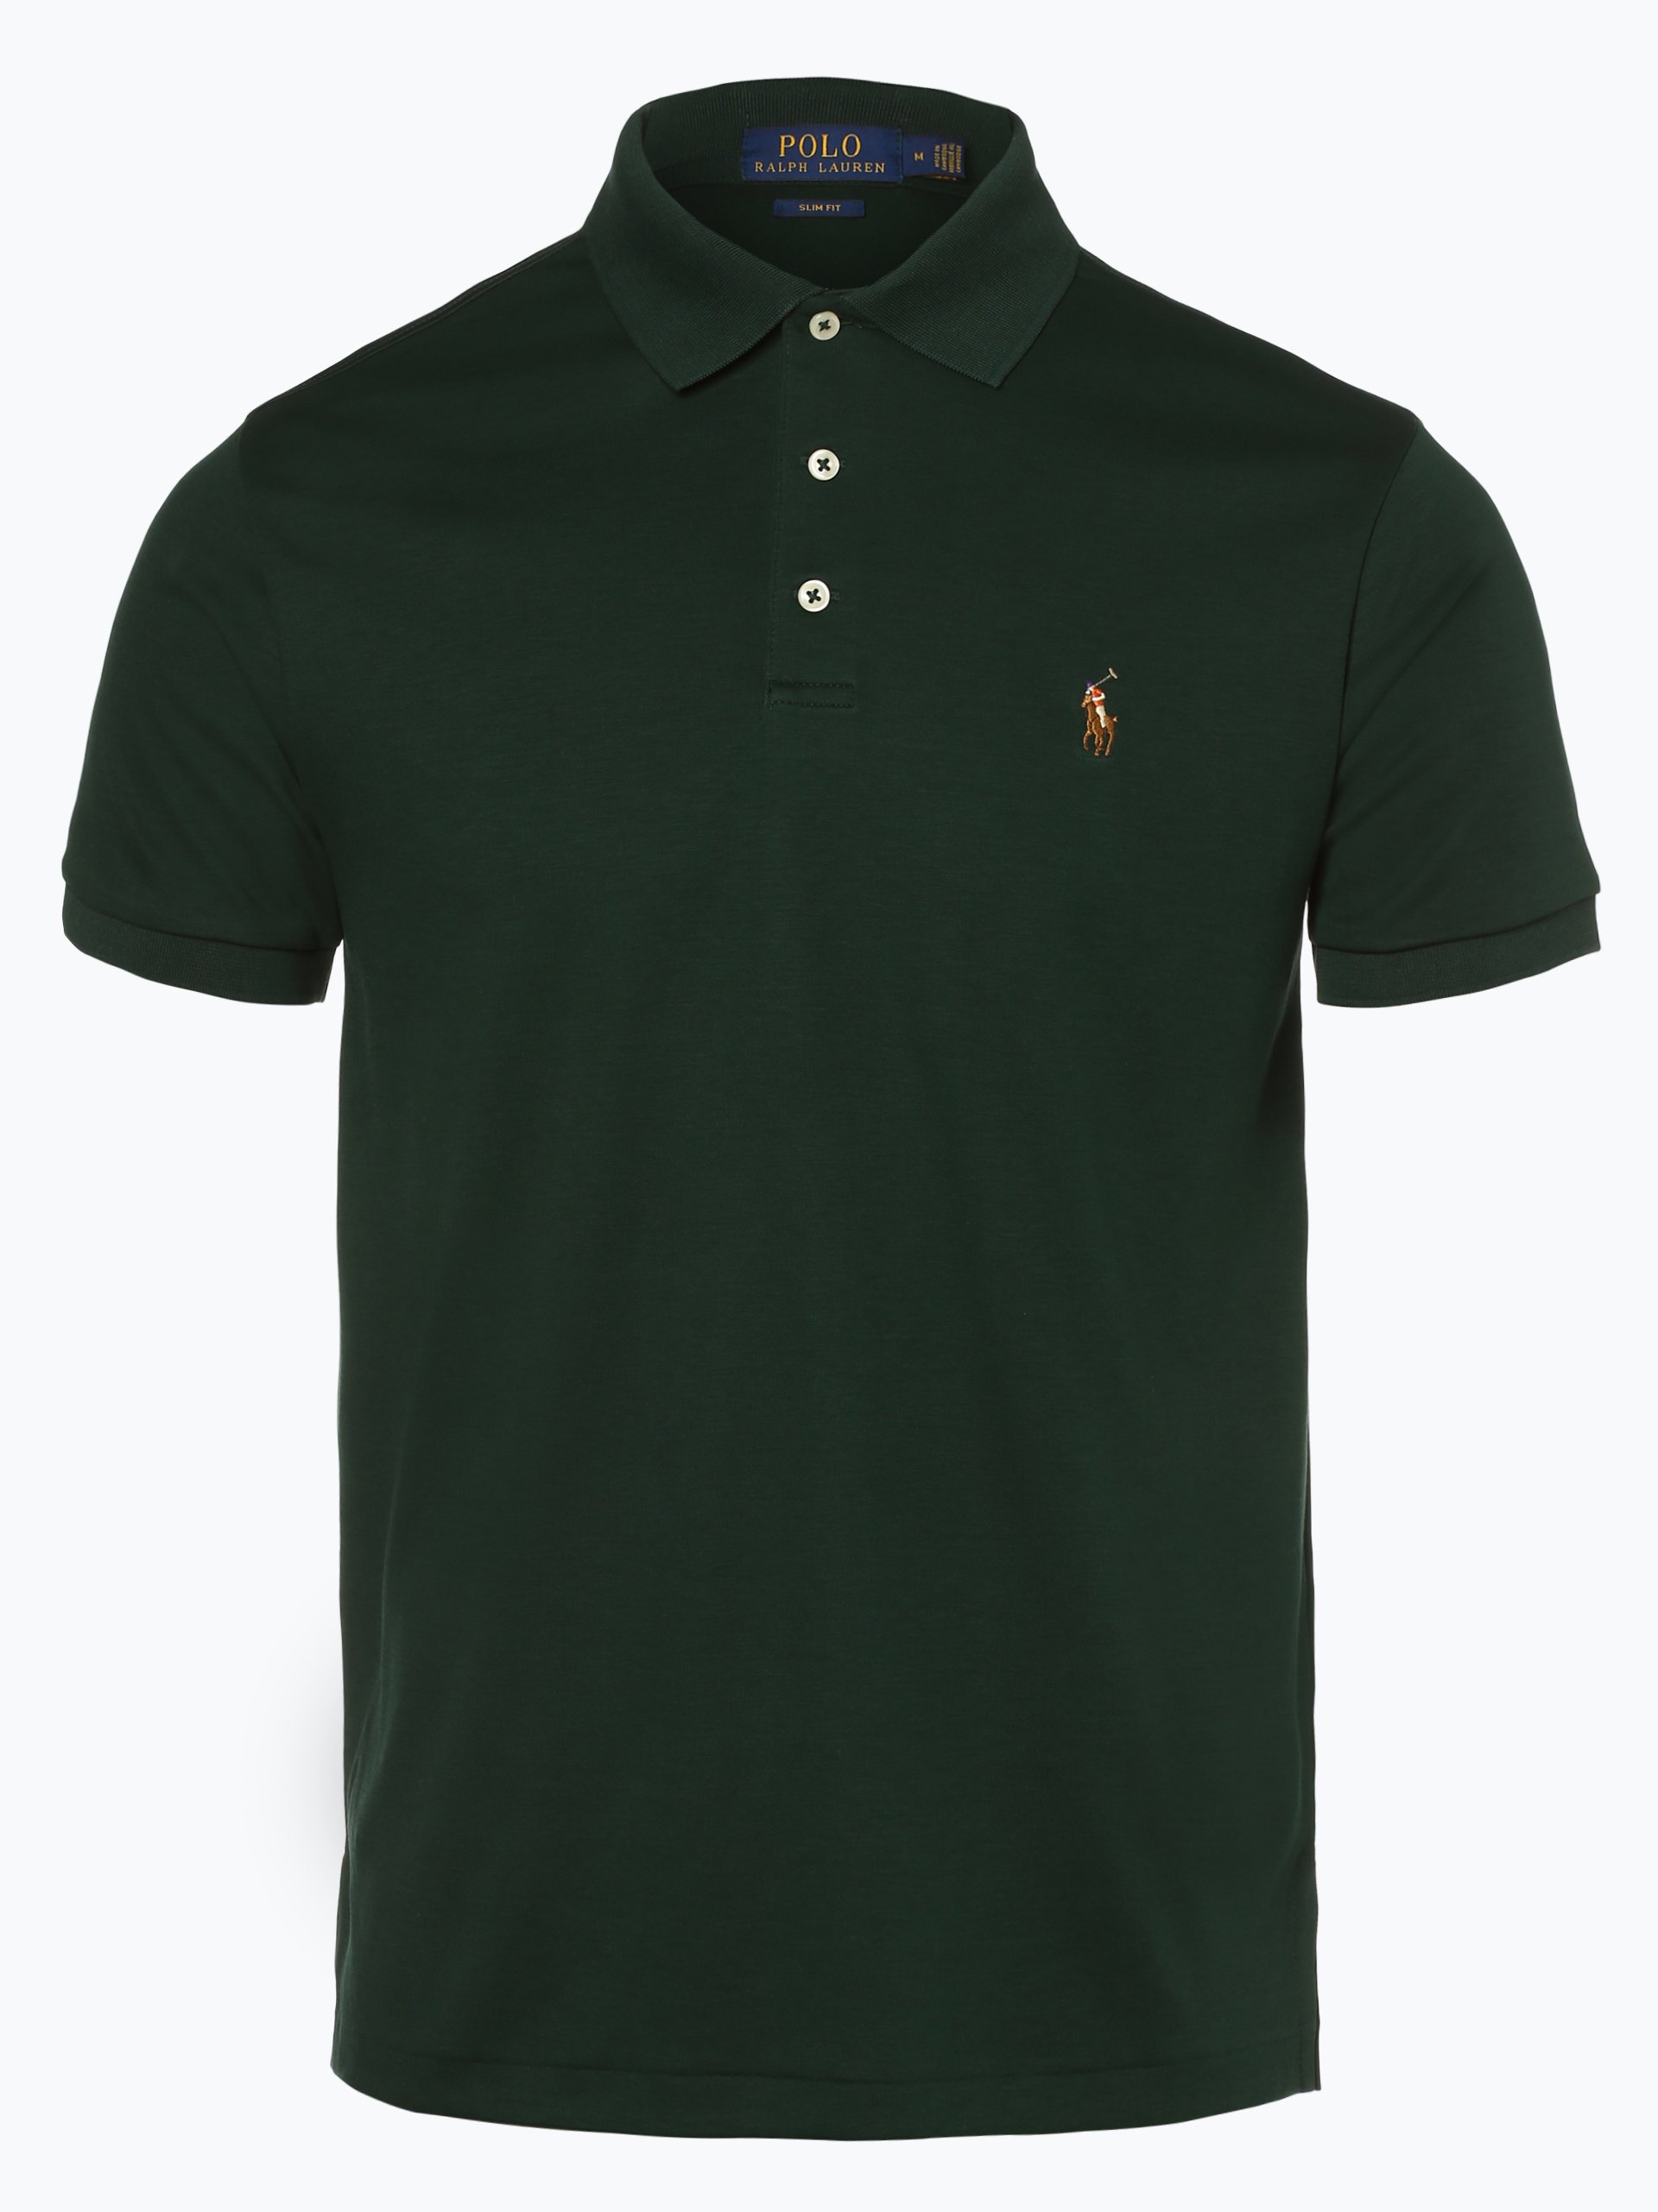 Polo Ralph Lauren Herren Poloshirt - Slim Fit